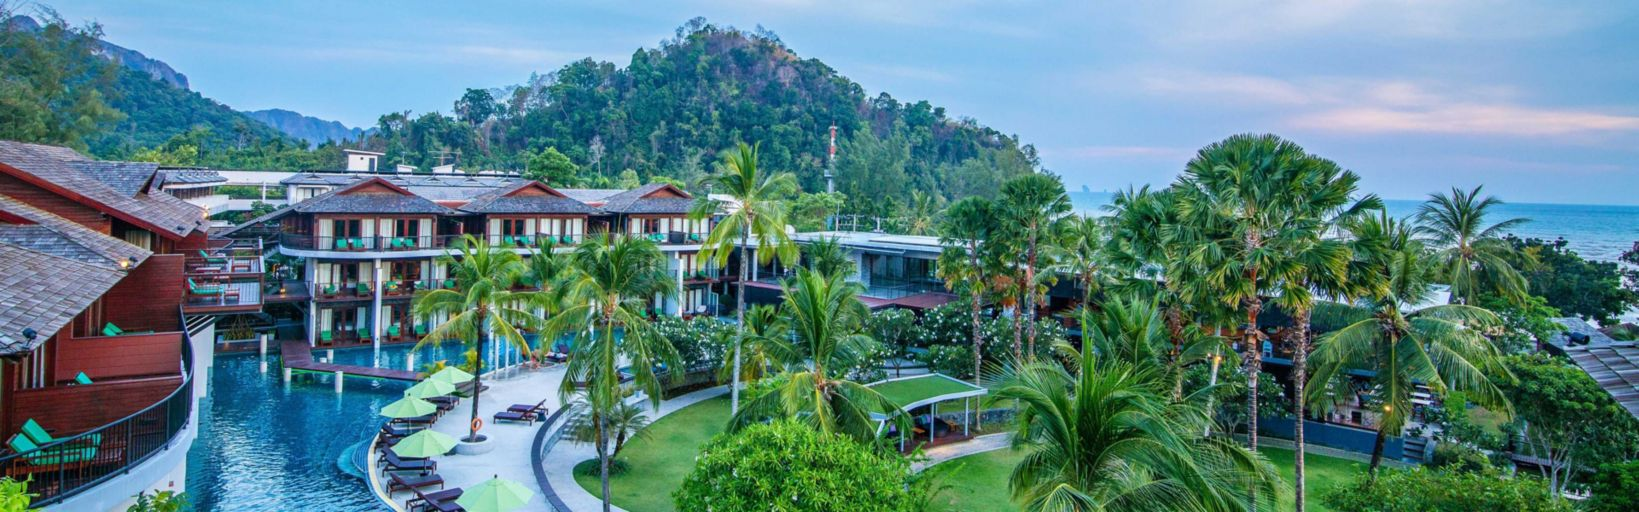 holiday-inn-resort-krabi-4588840480-16×5